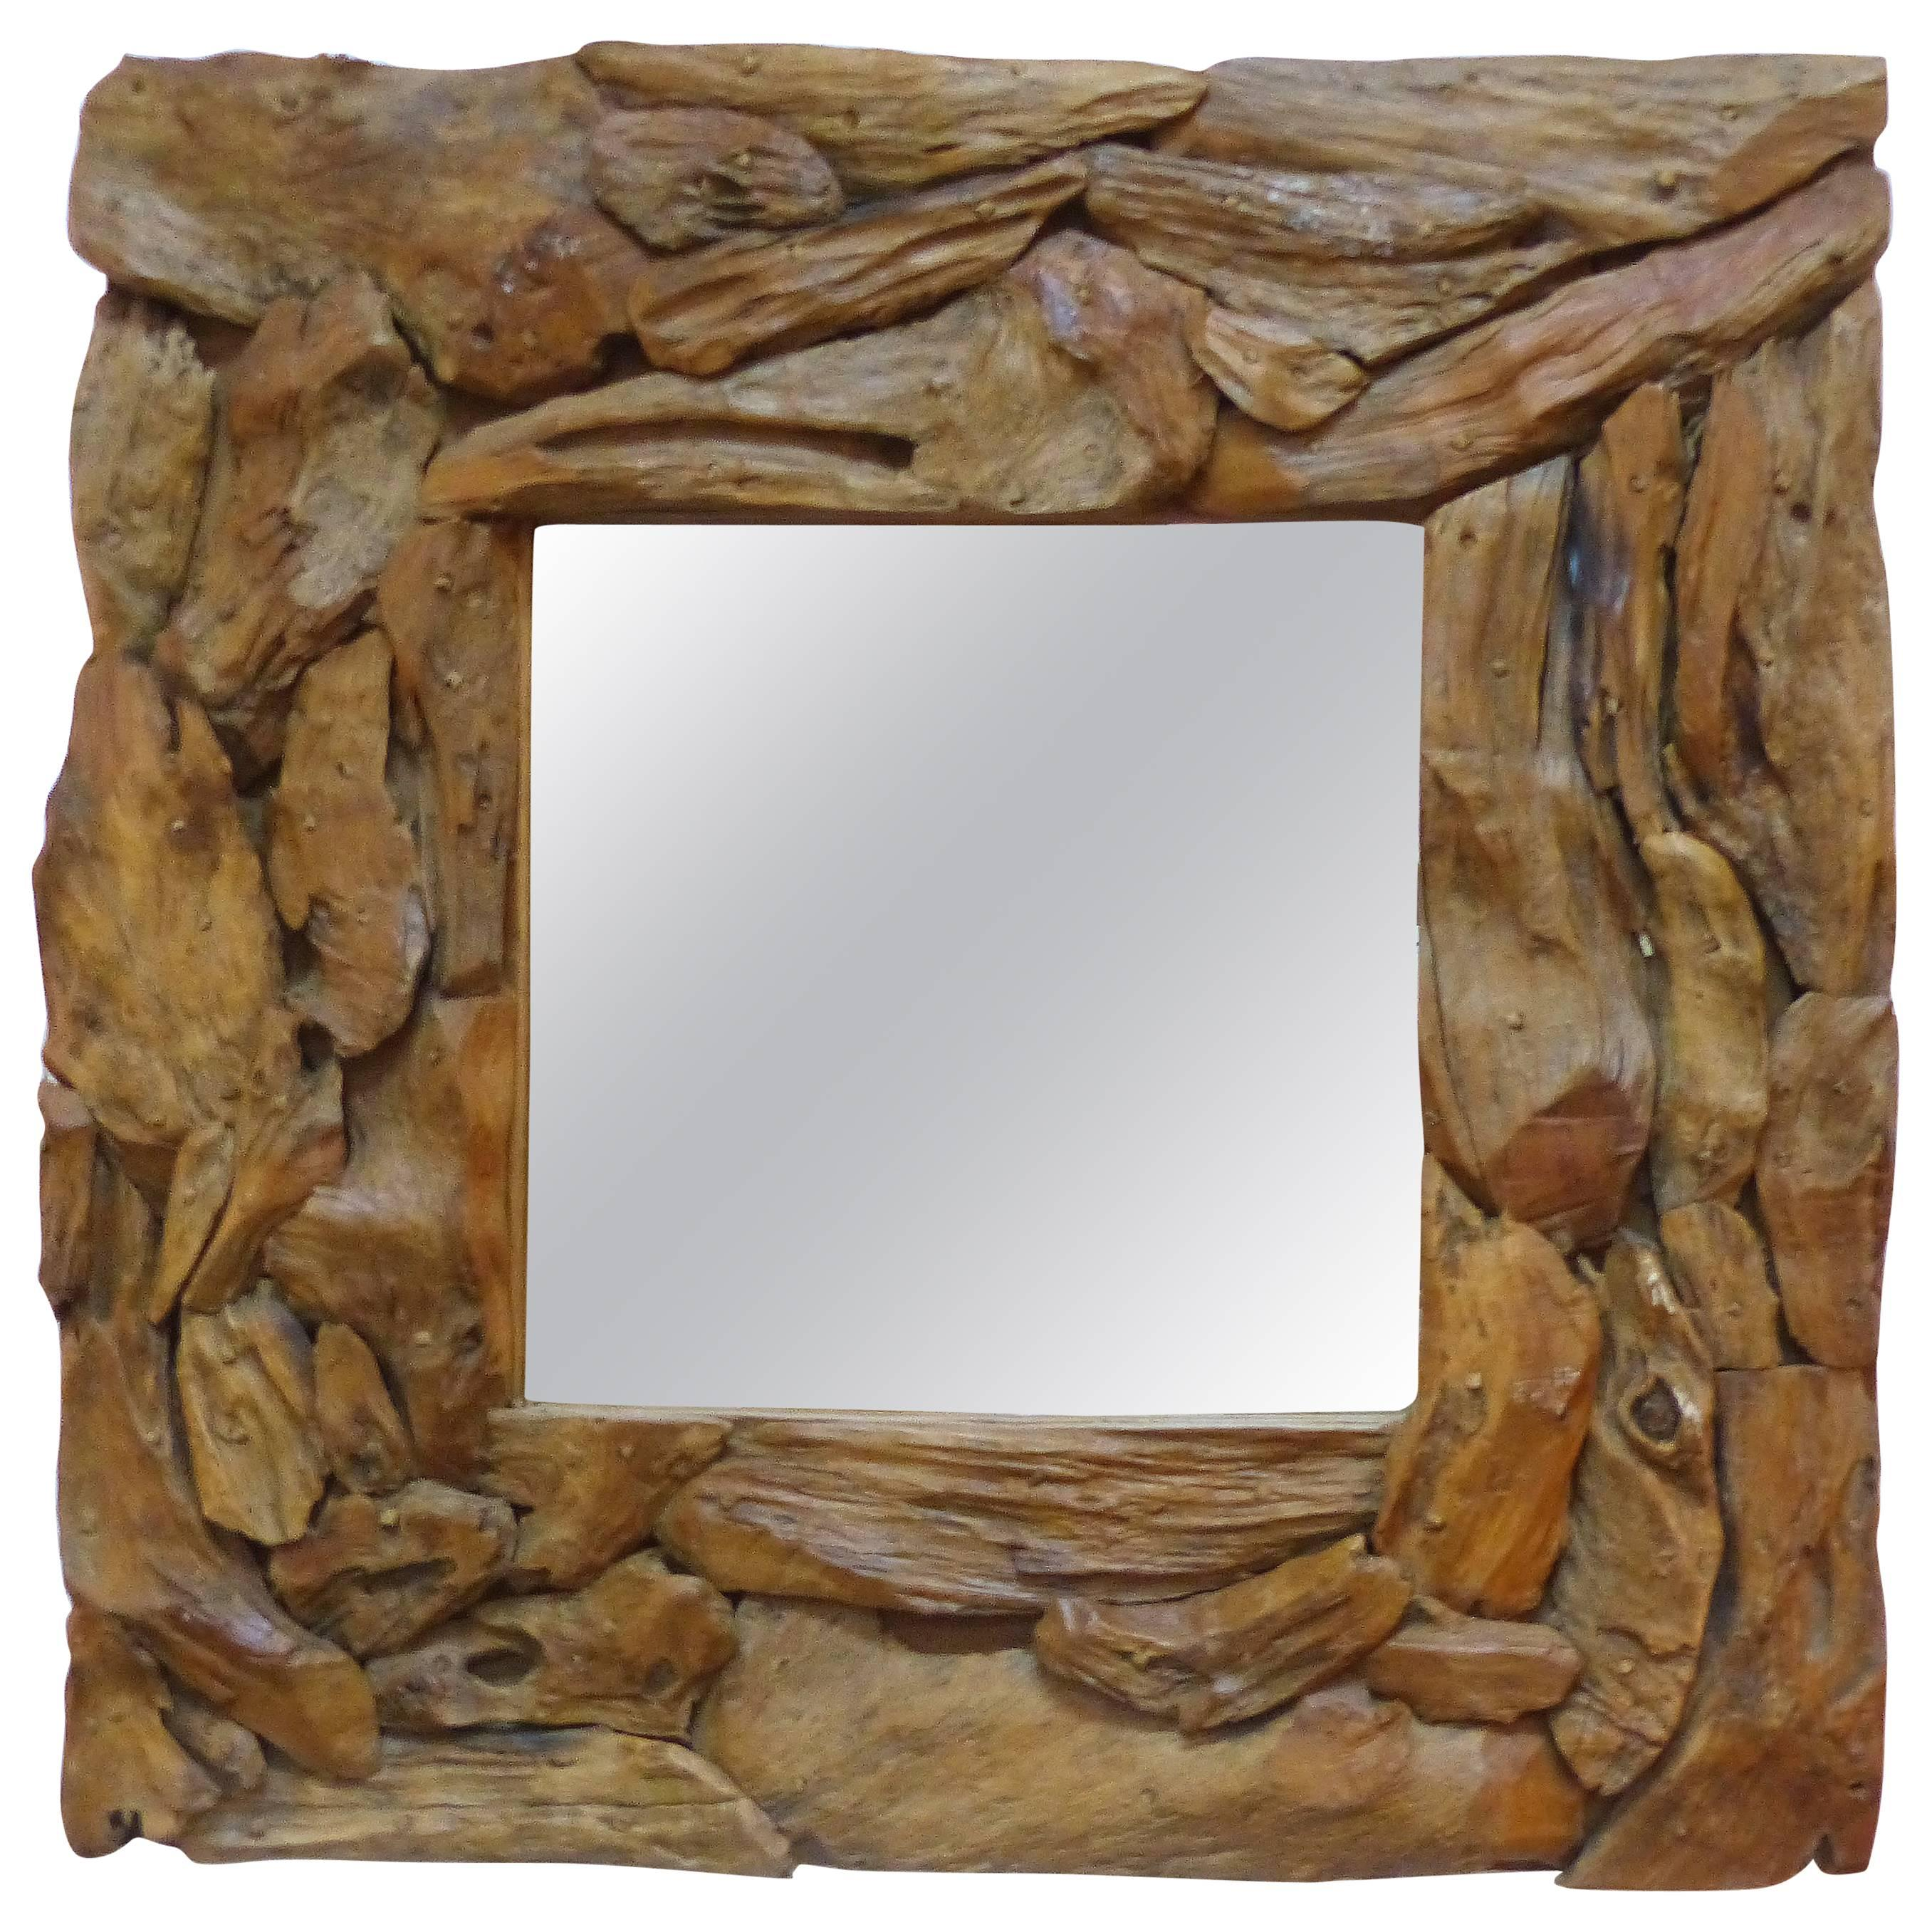 Organic Modern Driftwood Mirror For Sale at 1stdibs